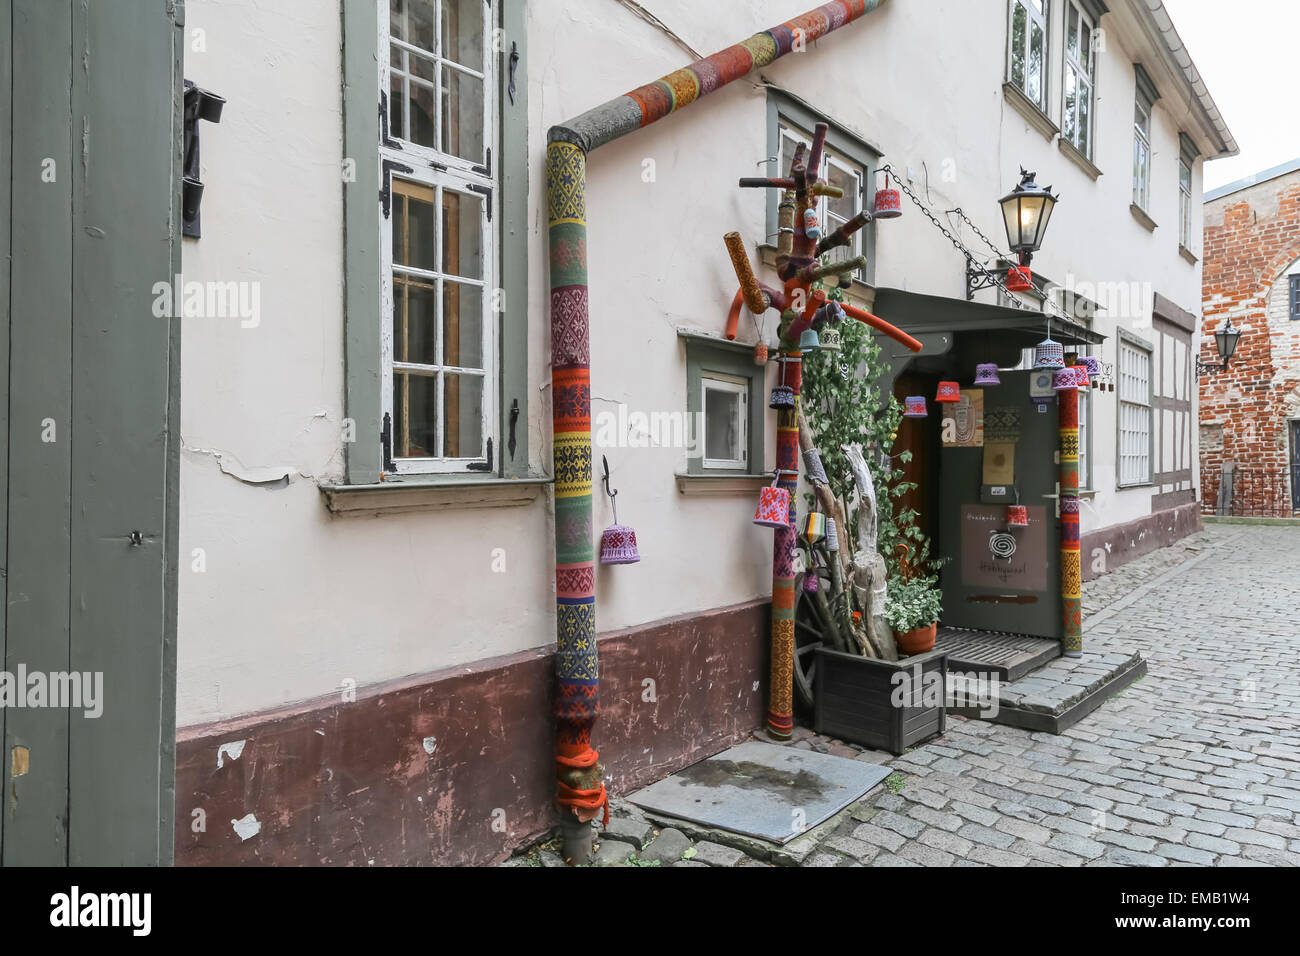 Narrow street in old town of Riga, Latvia with building with wool shop - Stock Image